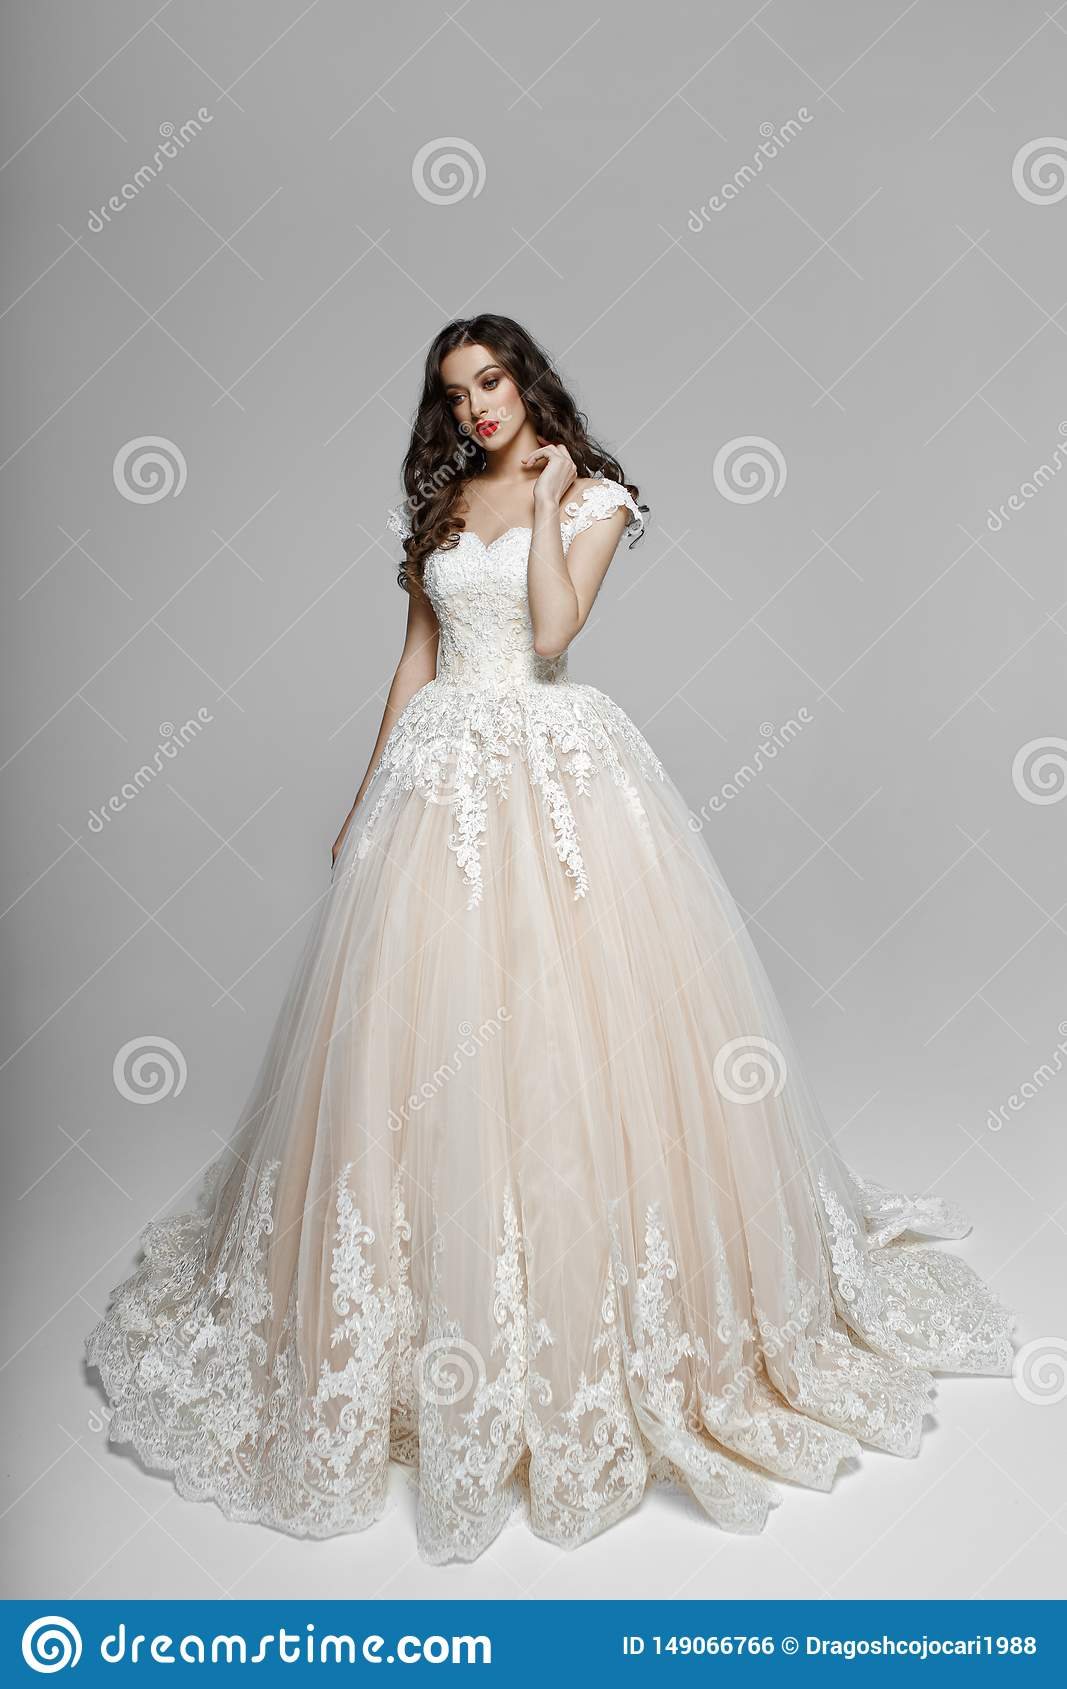 Beautiful girl with curly hair in wendding dress, he touches his neck with his hand, isolated on a white background.